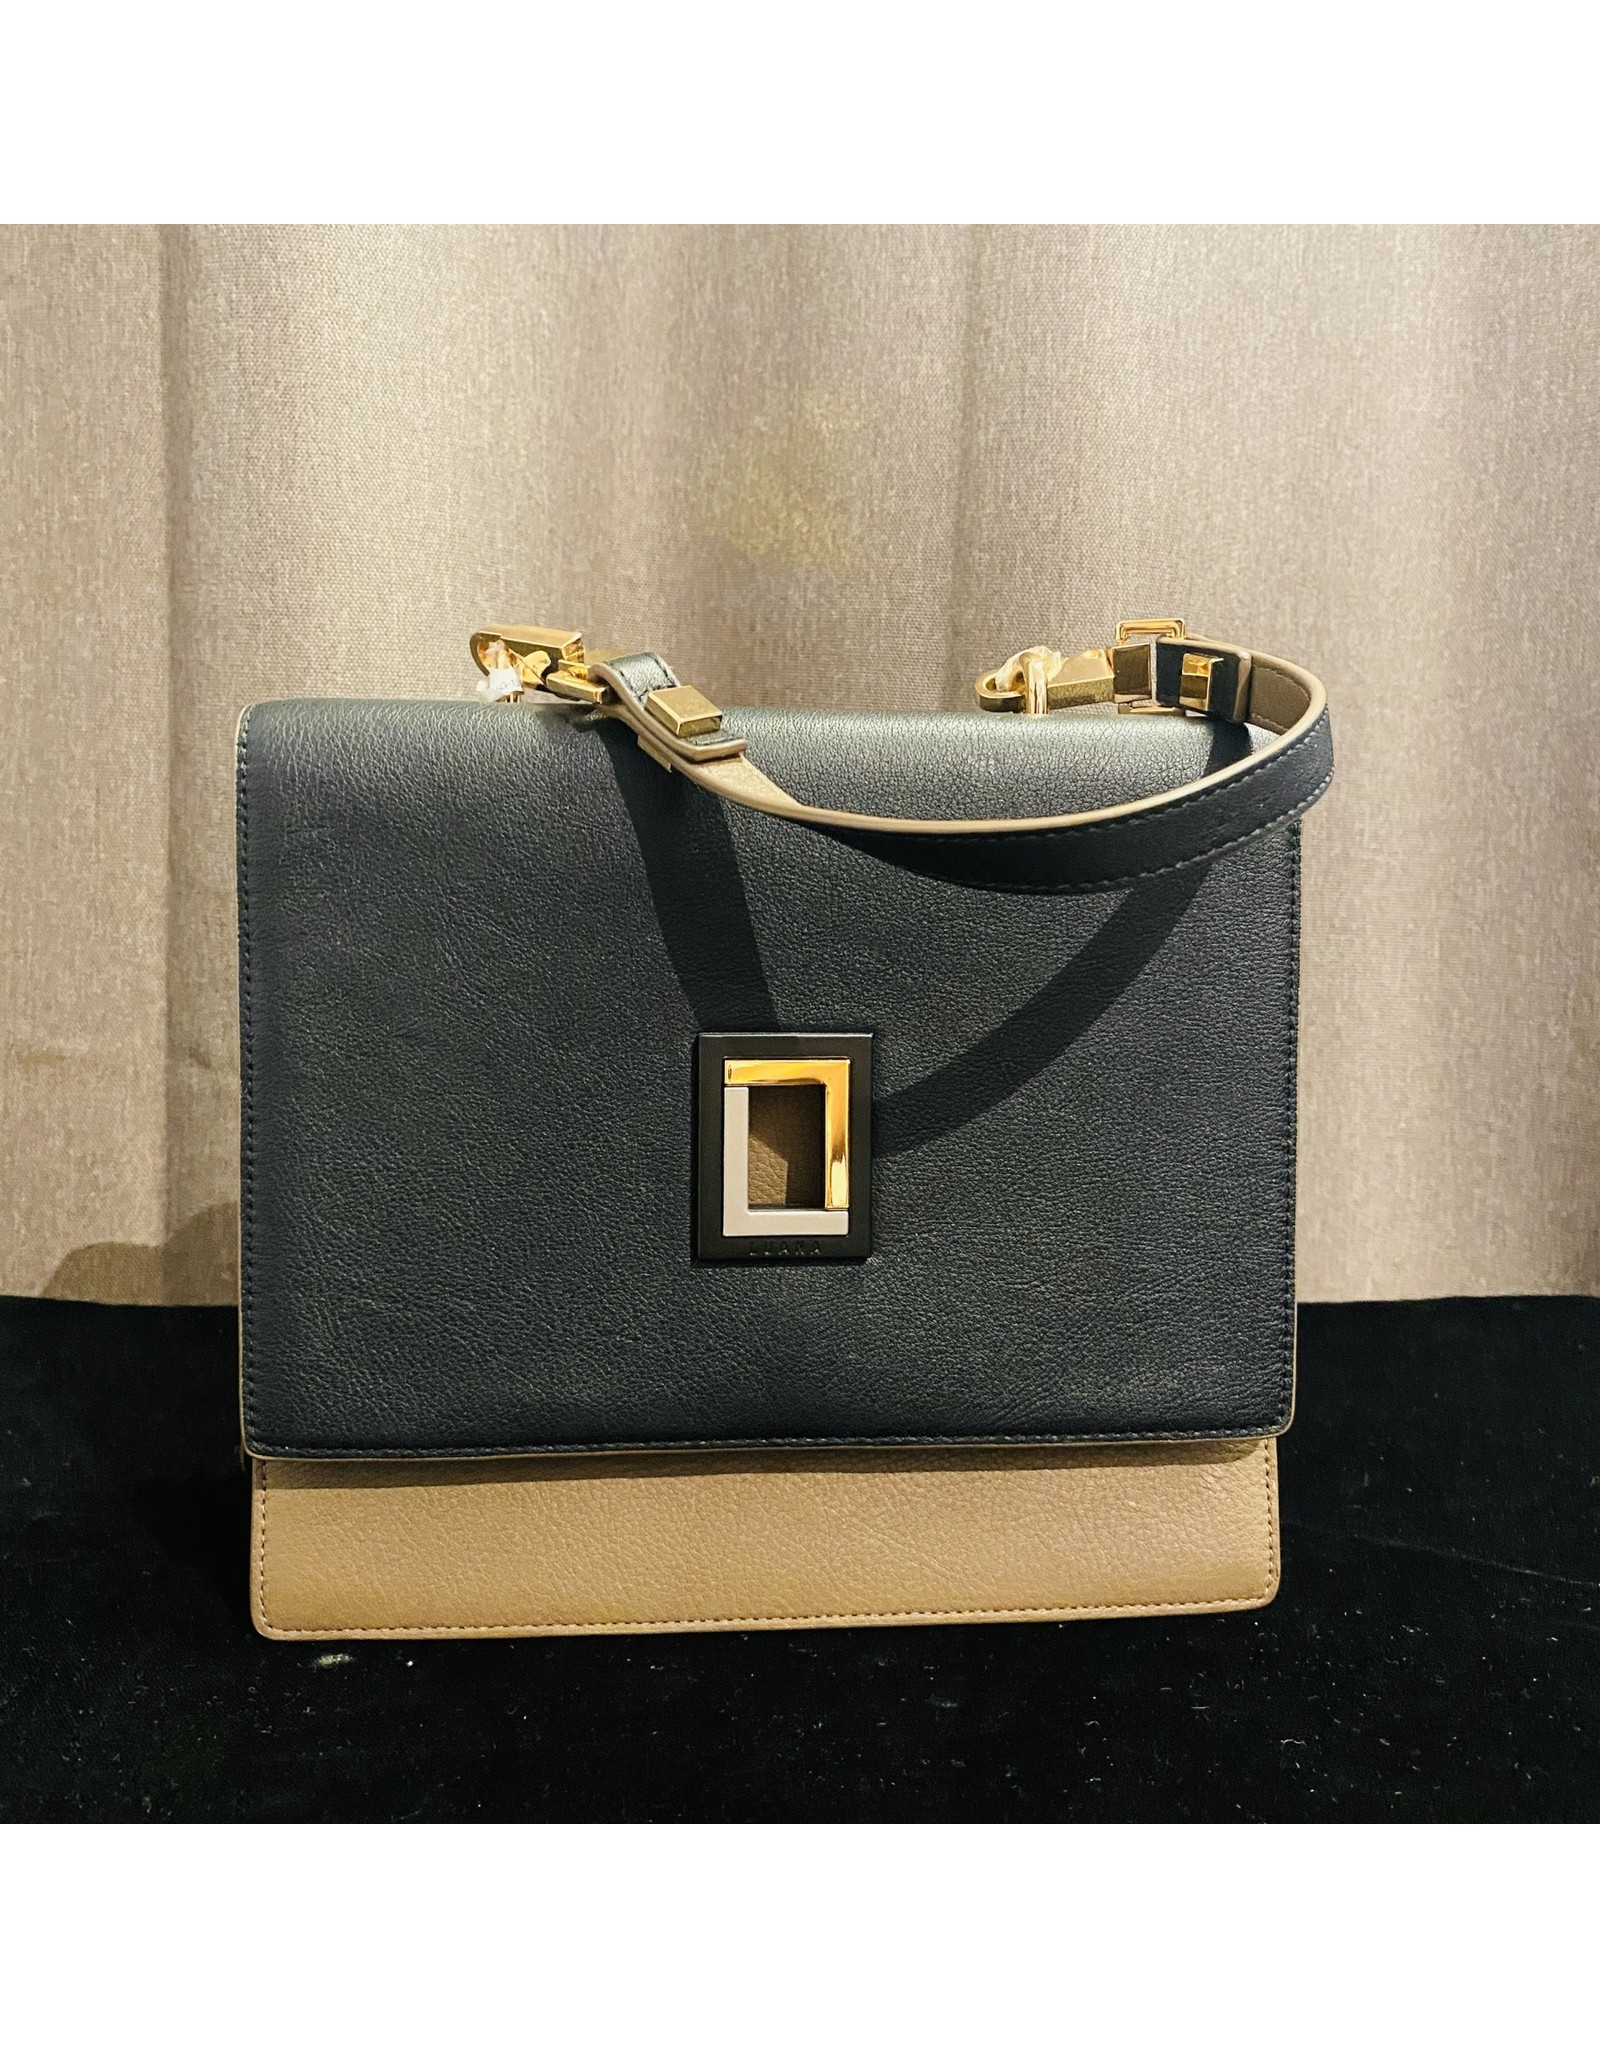 VC Accessories Marianna Satchel in Ebony and Taupe